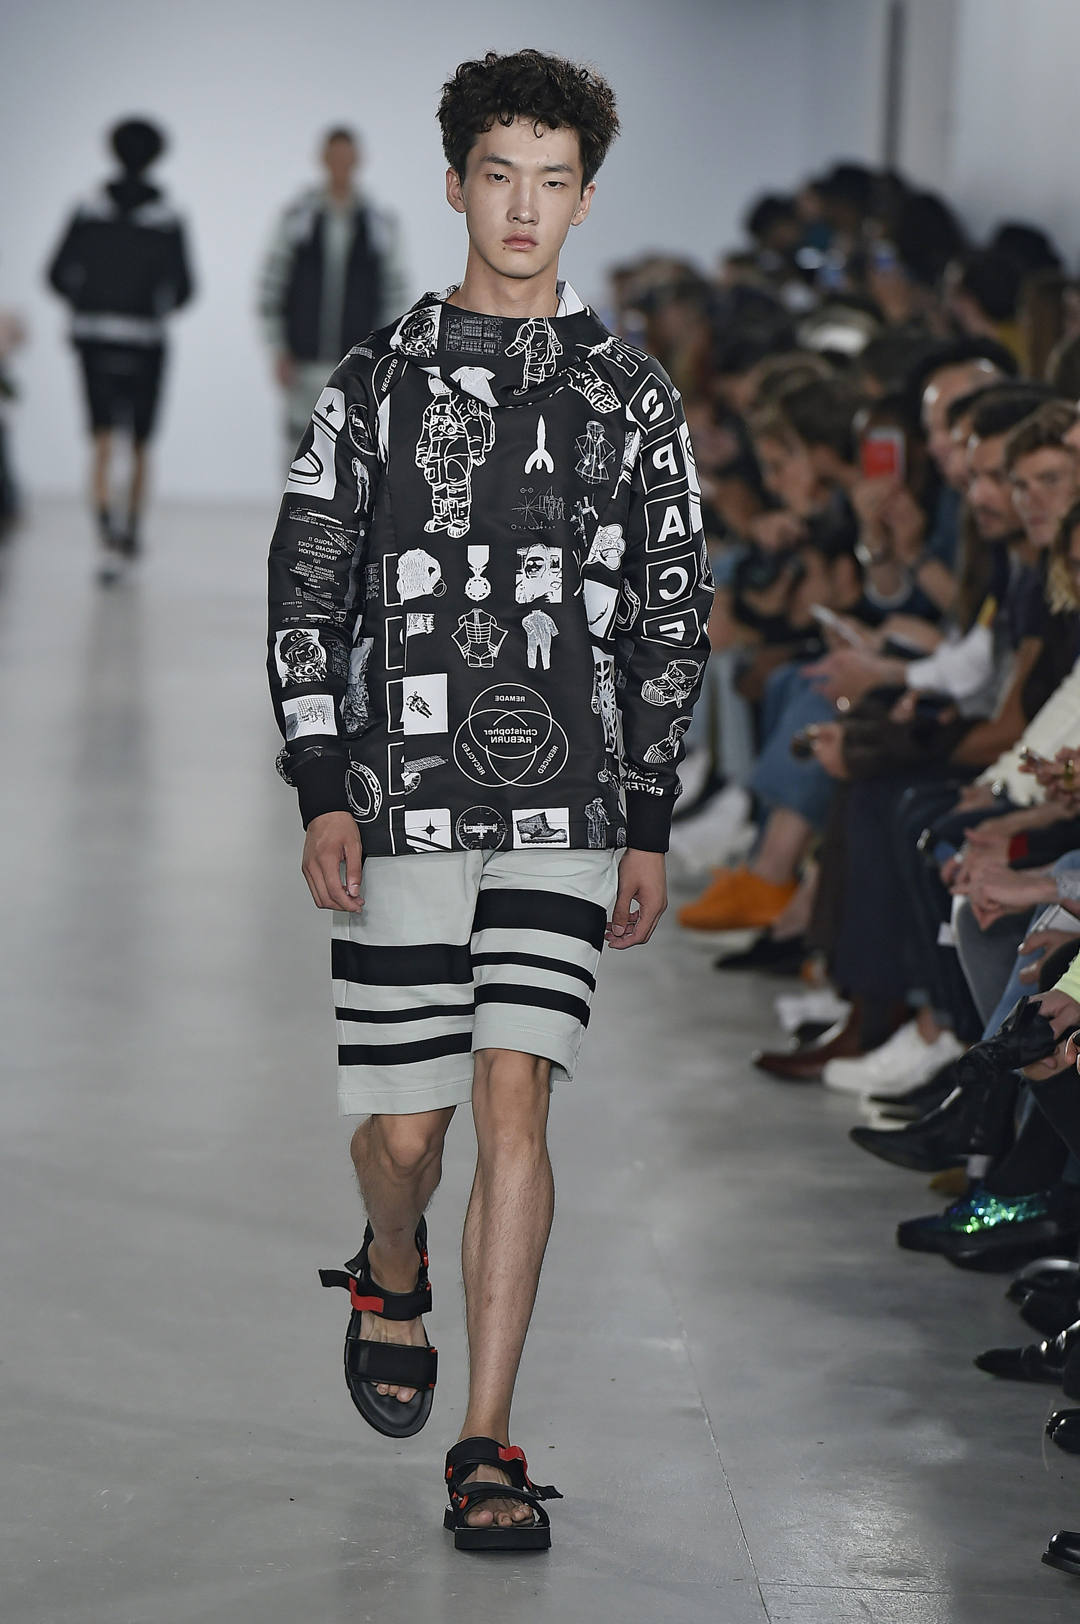 Christopher Raeburn, SS2017, Redone, eco-menwear, sustainable menwear, menwear brand, london, london fashion week, sustainable fashion for men, moda sostenible para hombres, moda ecológica para hombres, moda de lujo, luxury eco menswear, sustainable fashion designer, luxiders, luxiders magazine